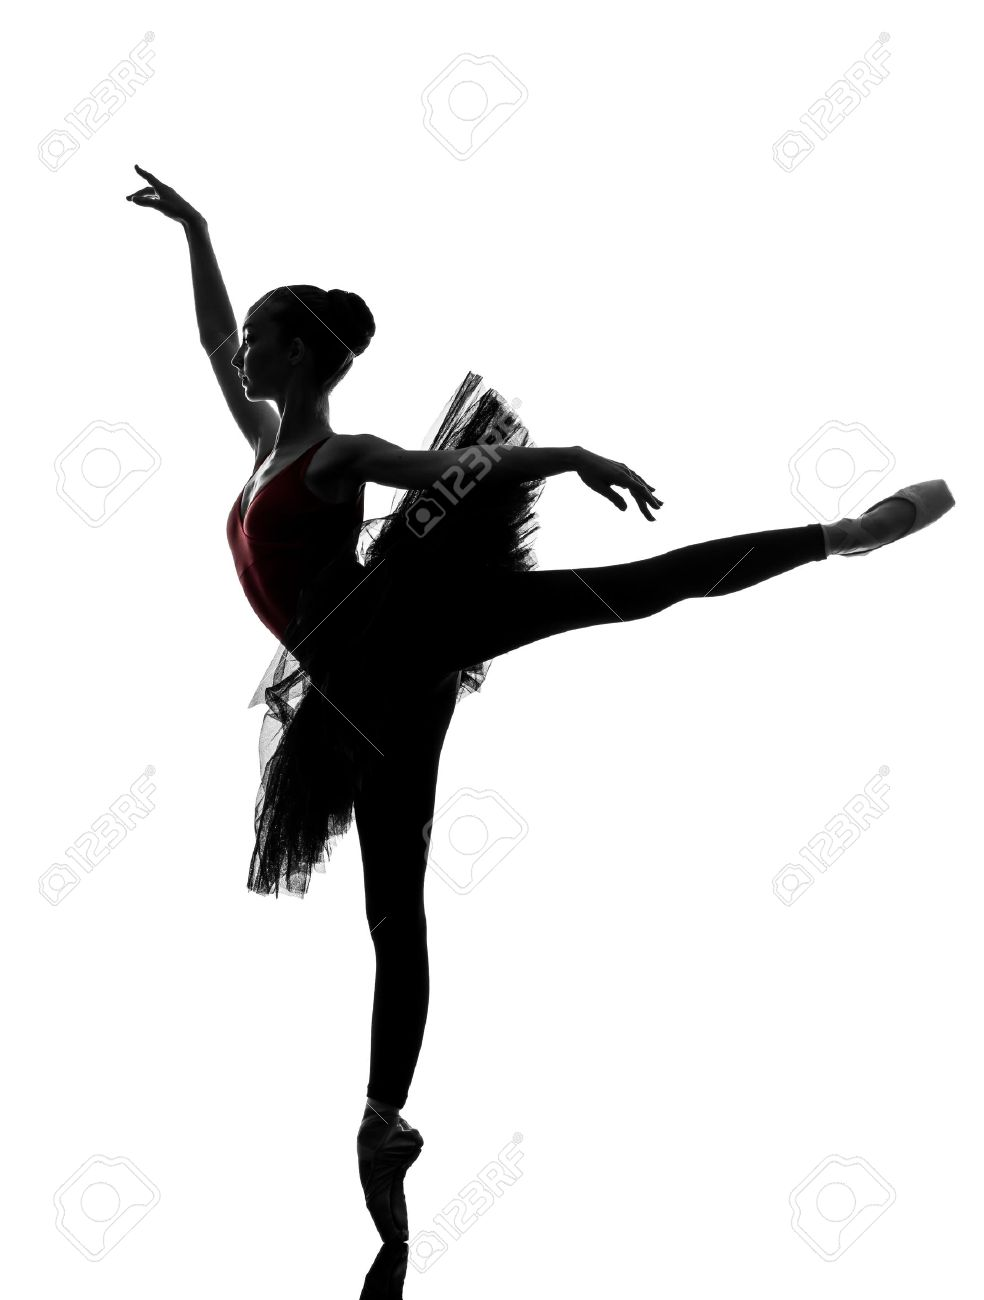 ballet dancer stock photos royalty free ballet dancer images and